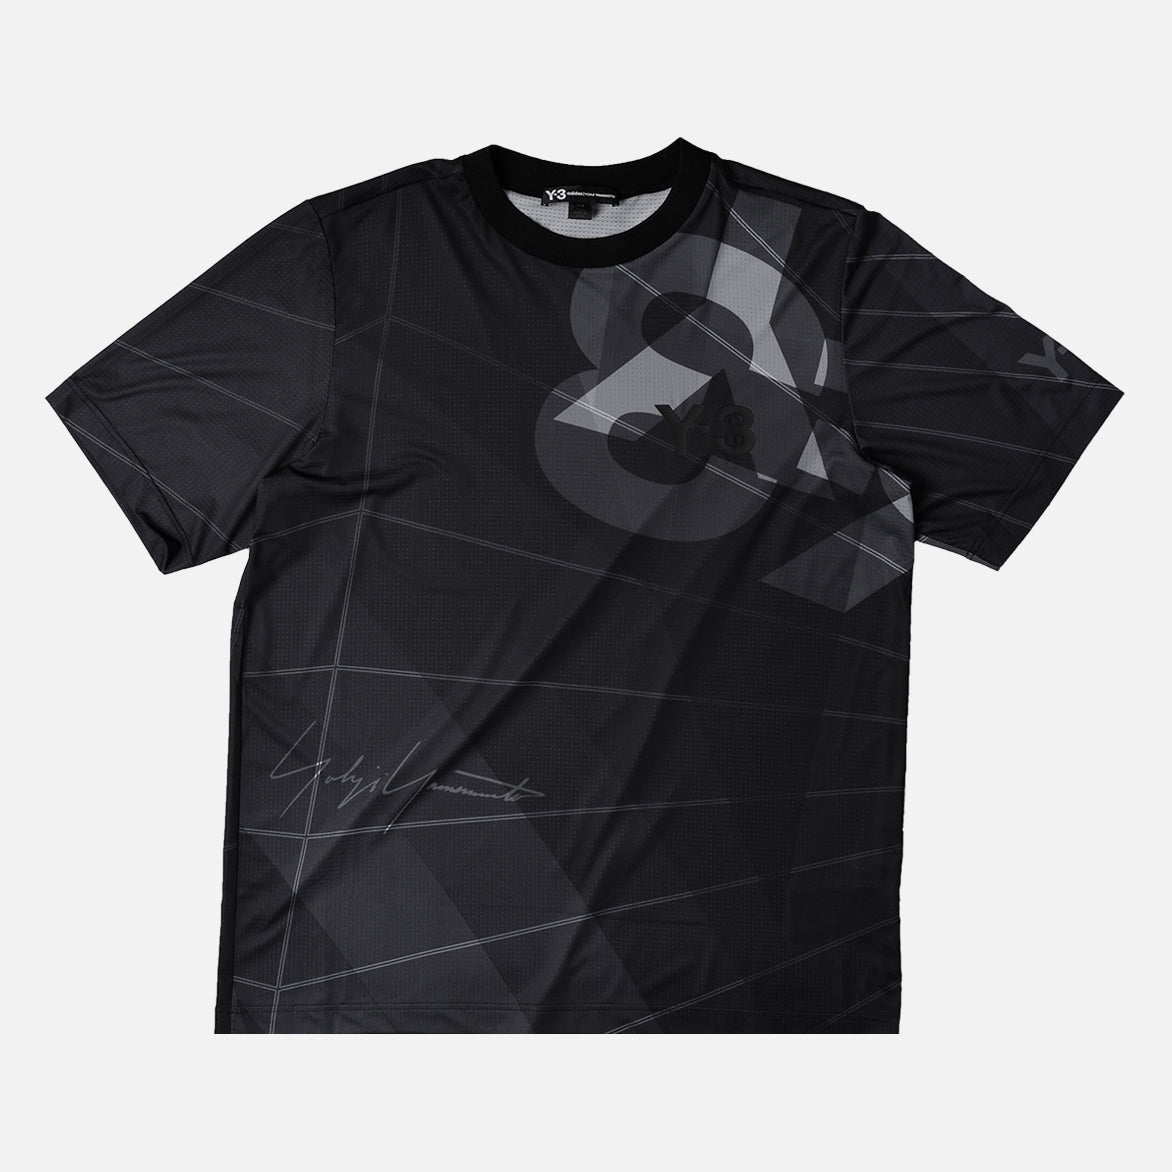 AOP FOOTBALL SHIRT - BLACK